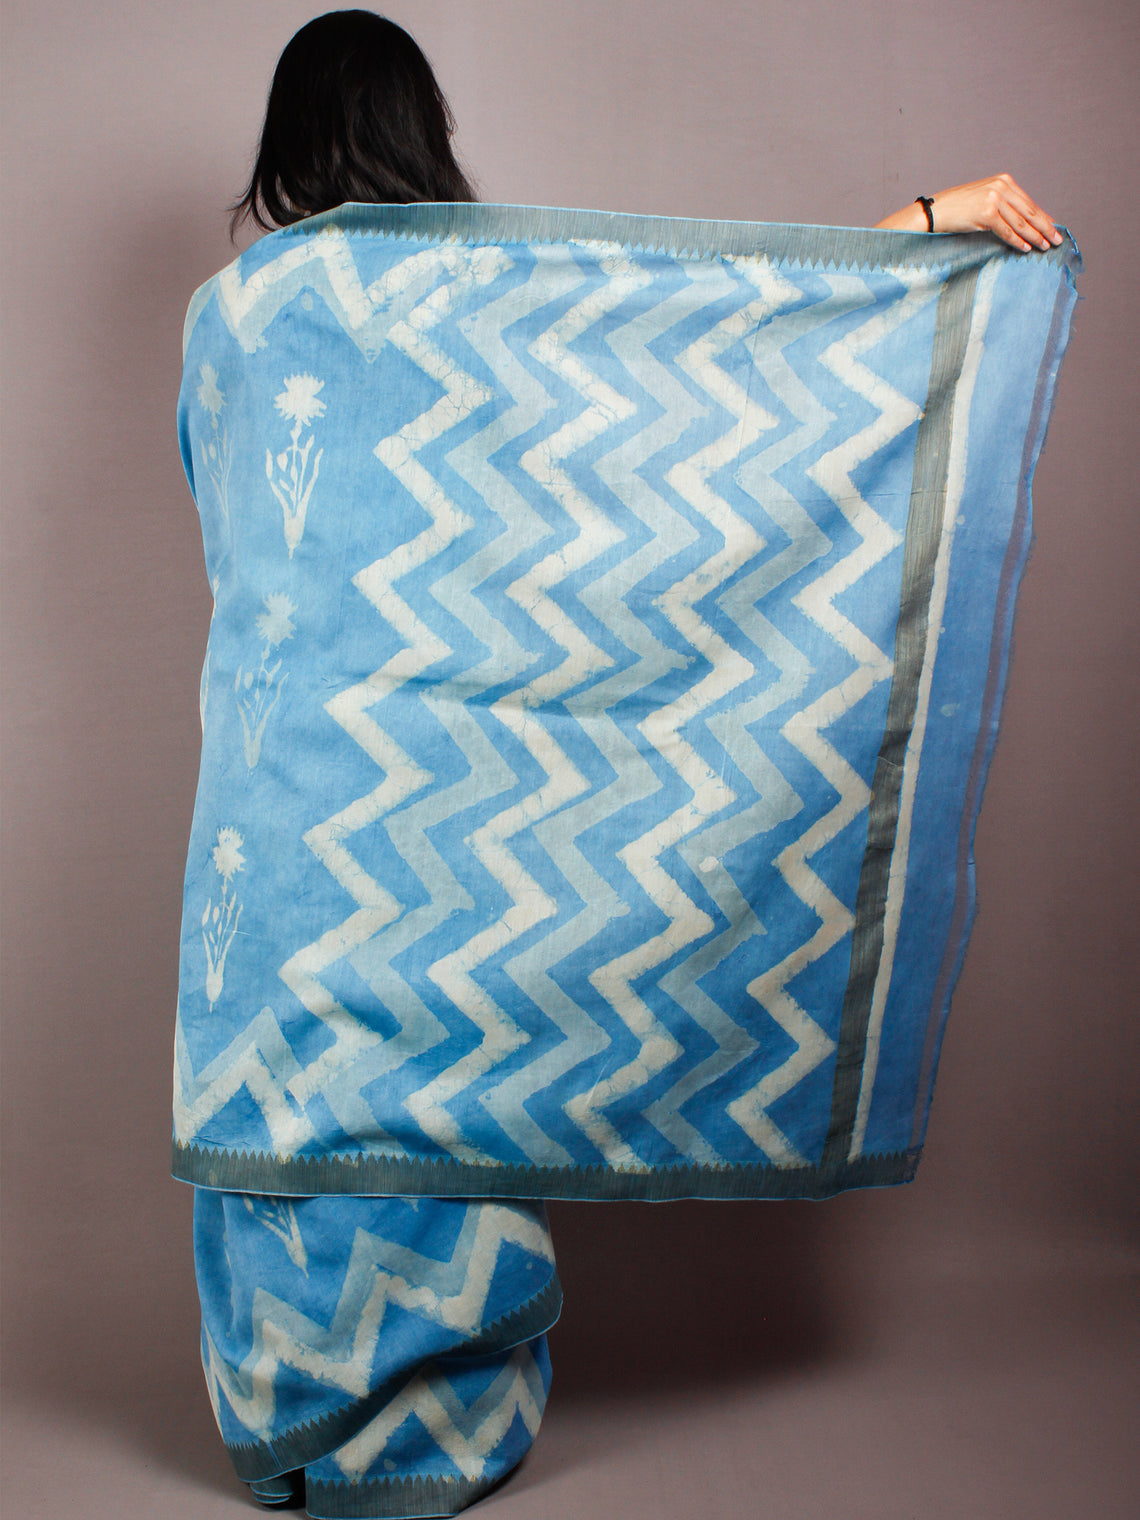 Sky Blue Ivory Hand Block Printed in Natural Vegetable Colors Chanderi Saree With Geecha Border - S03170503